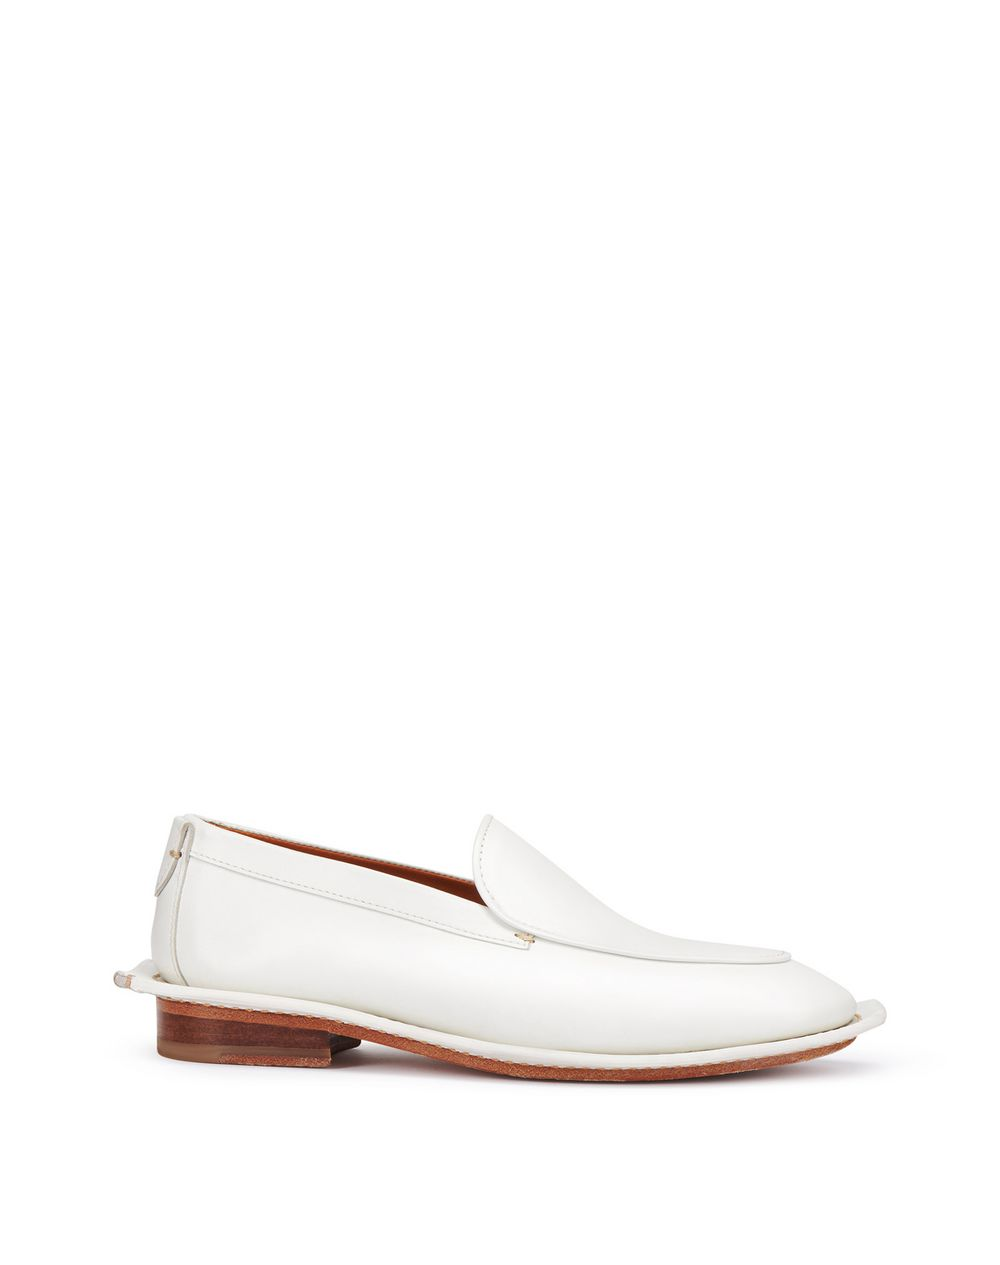 LEATHER LOAFER - Lanvin